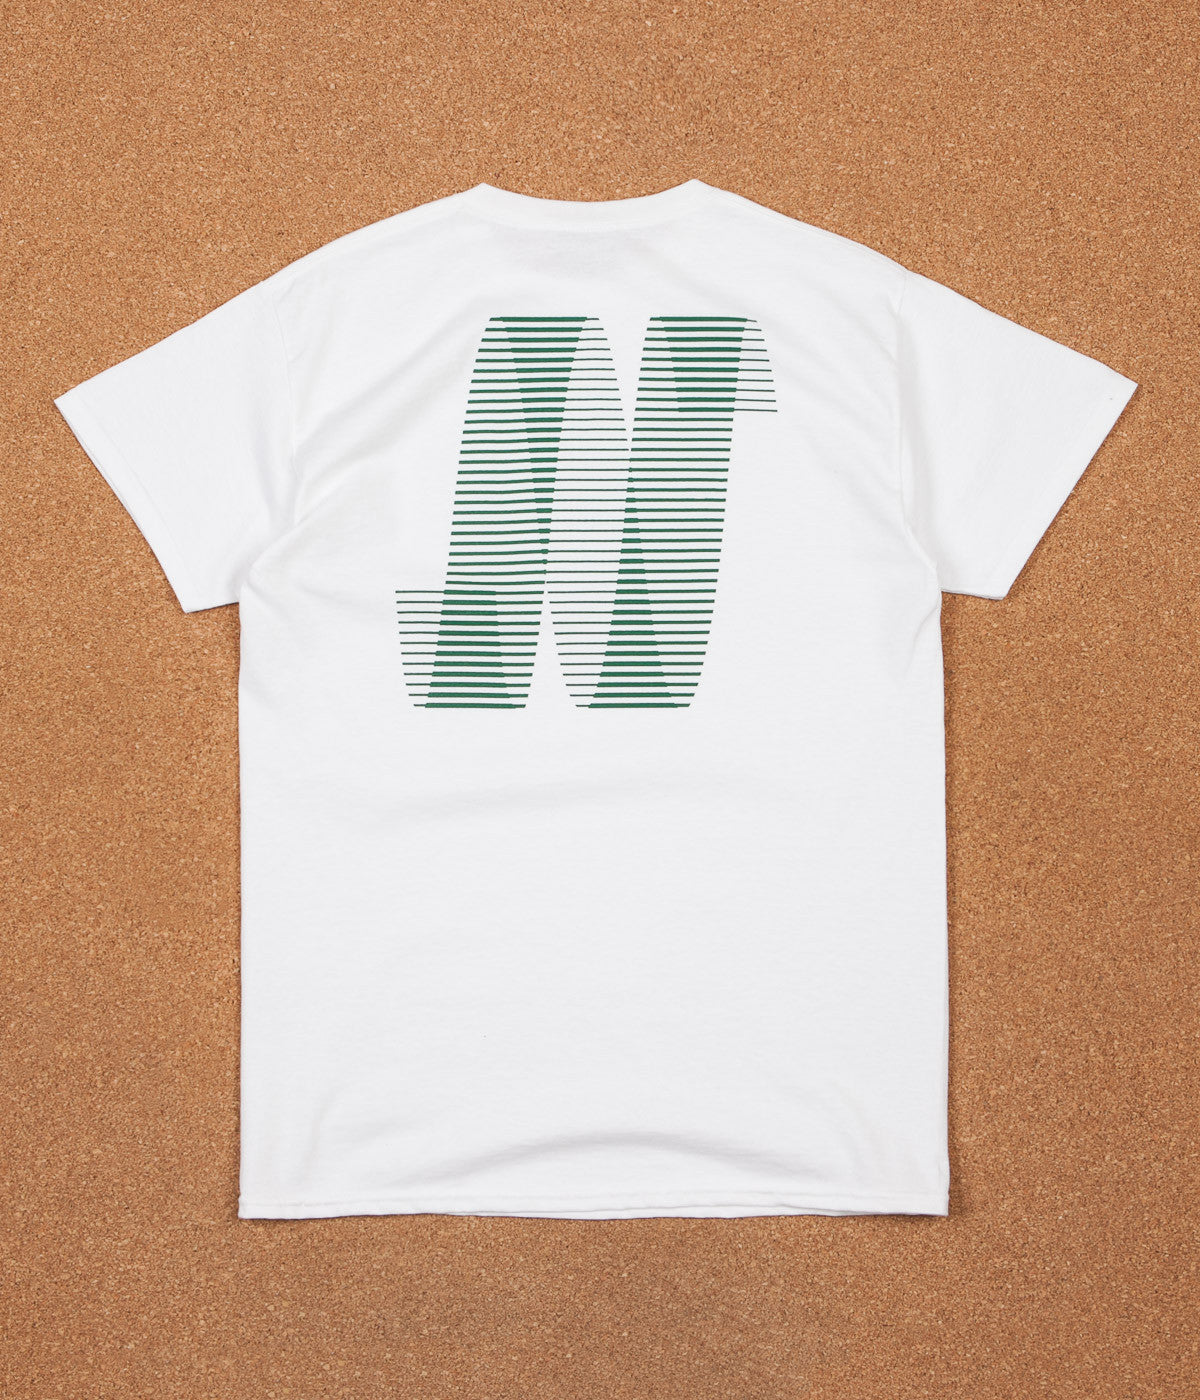 North Skateboard Magazine N Logo T-Shirt - White / Forest